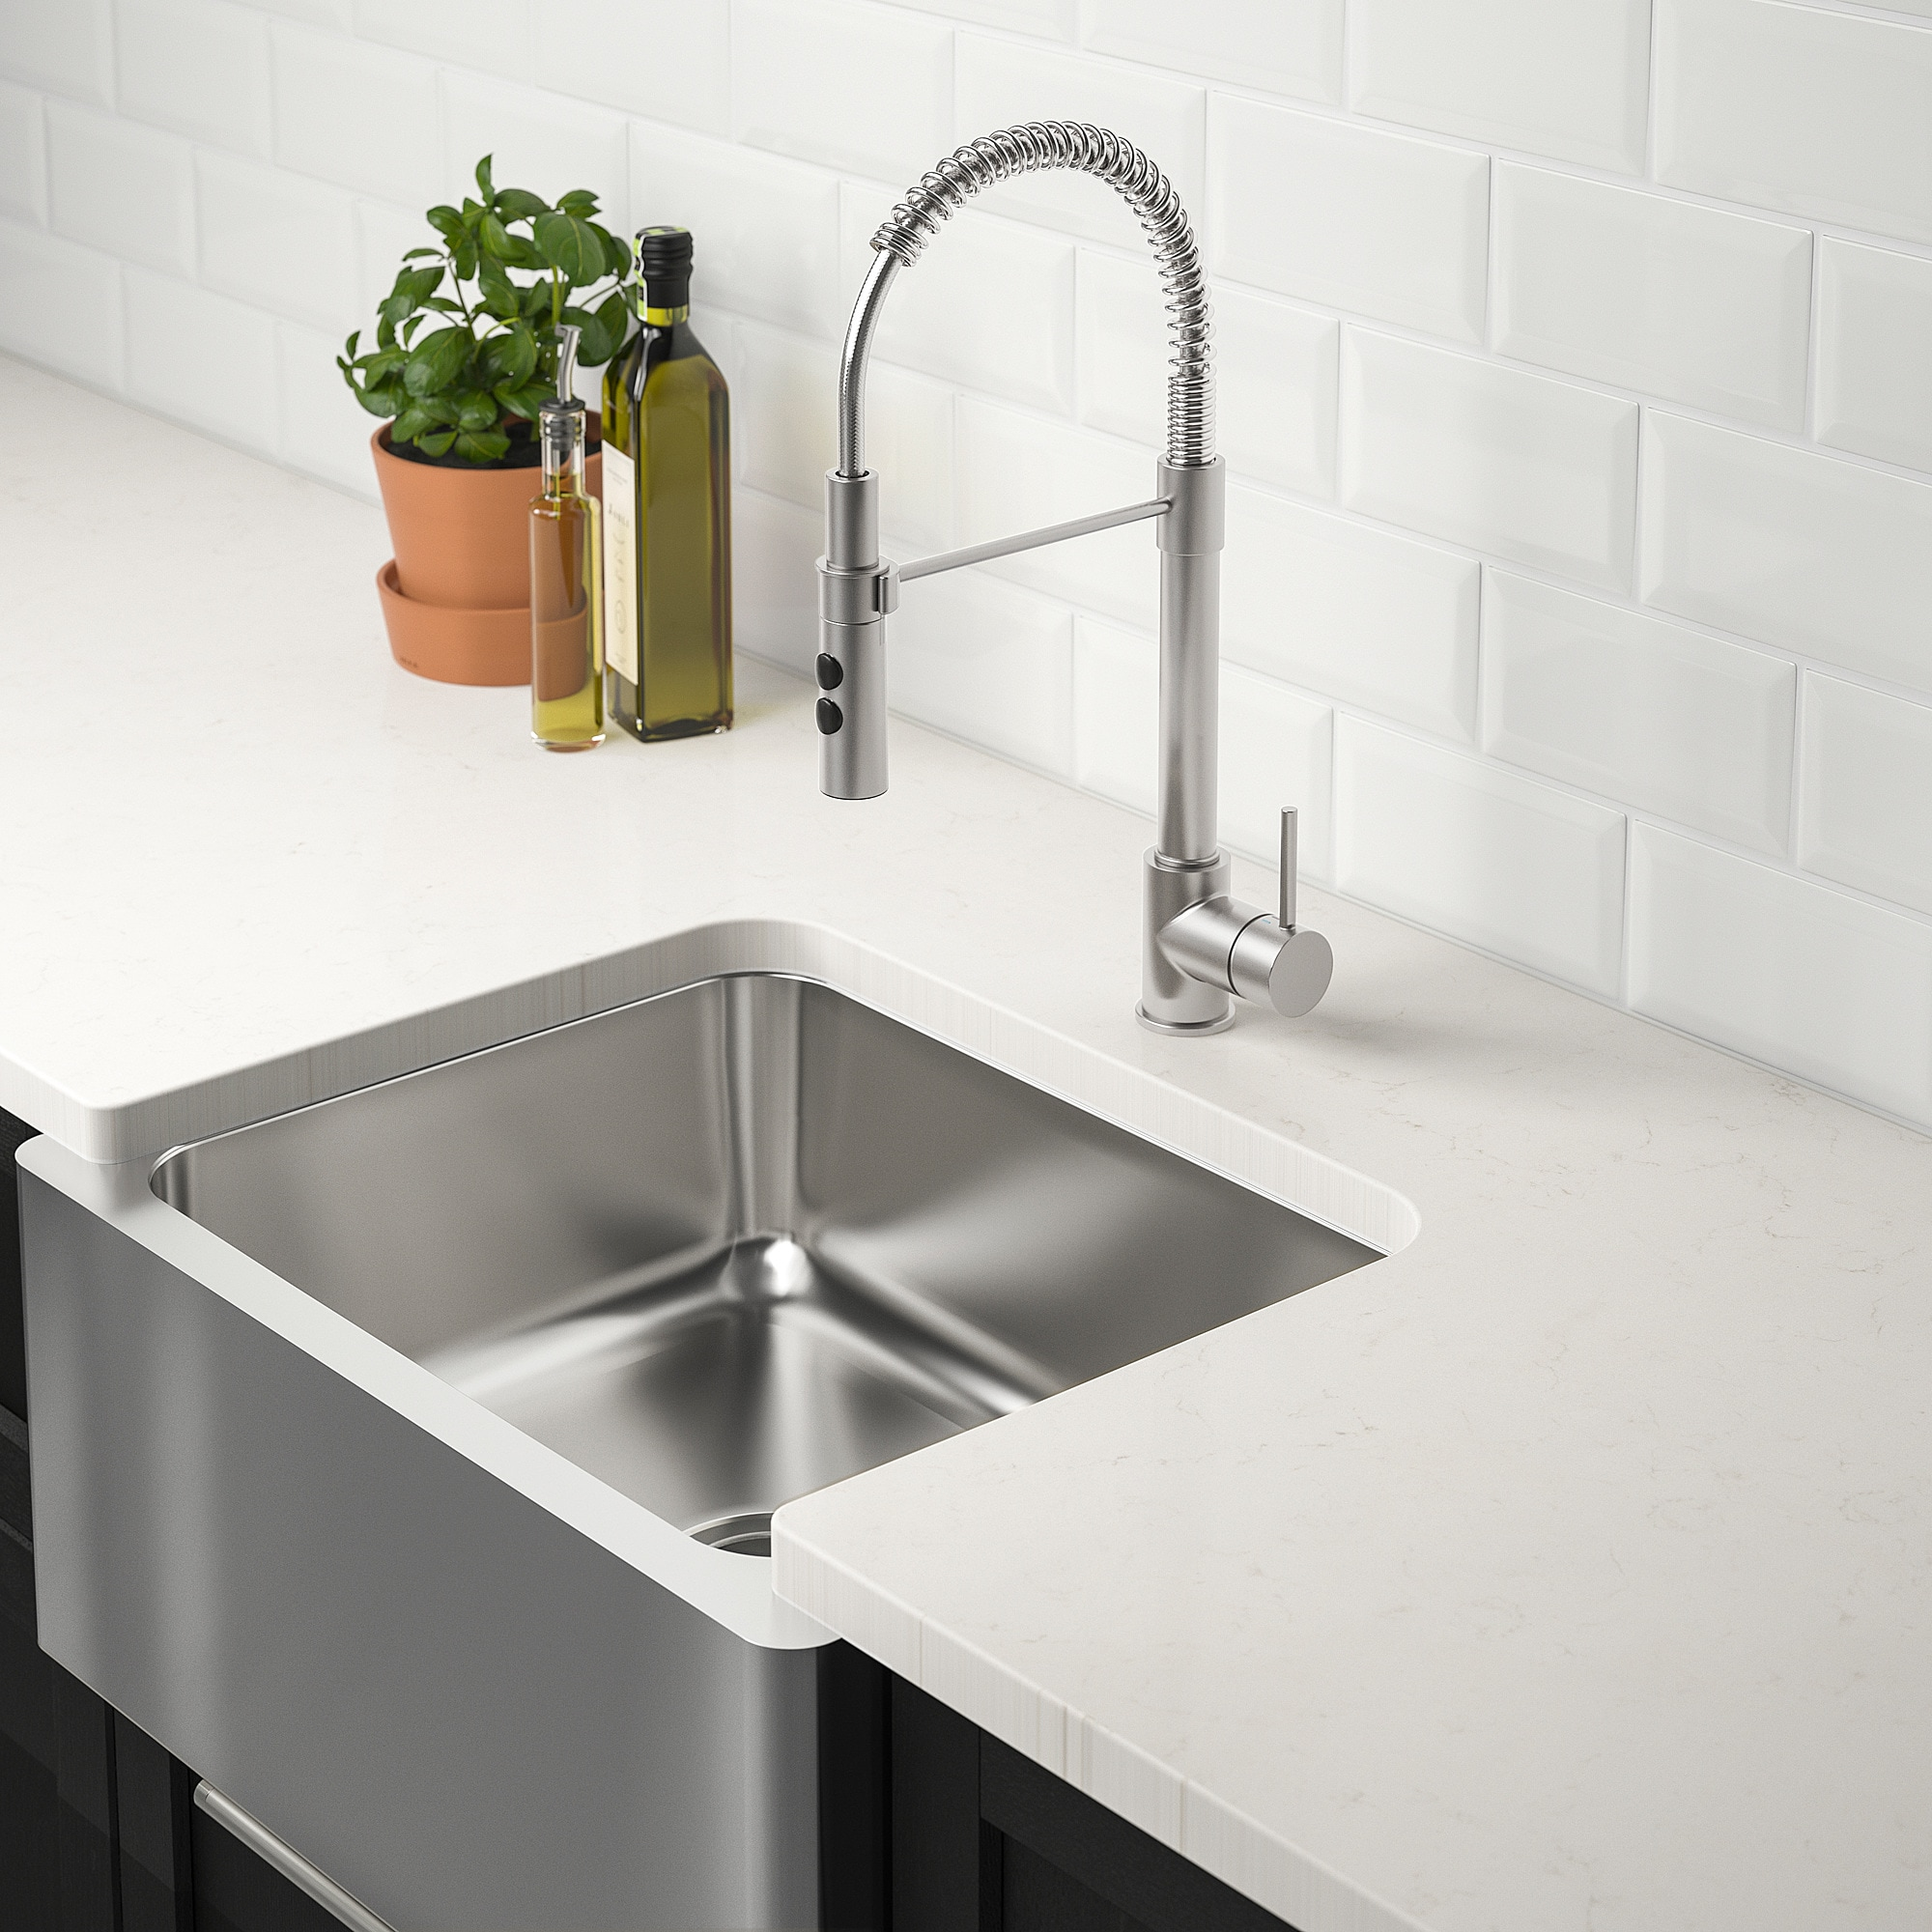 Bredsjon Apron Front Sink Under Glued Stainless Steel 24x18 60 6x45 Cm Apron Front Sink Stainless Steel Apron Front Sink Sink